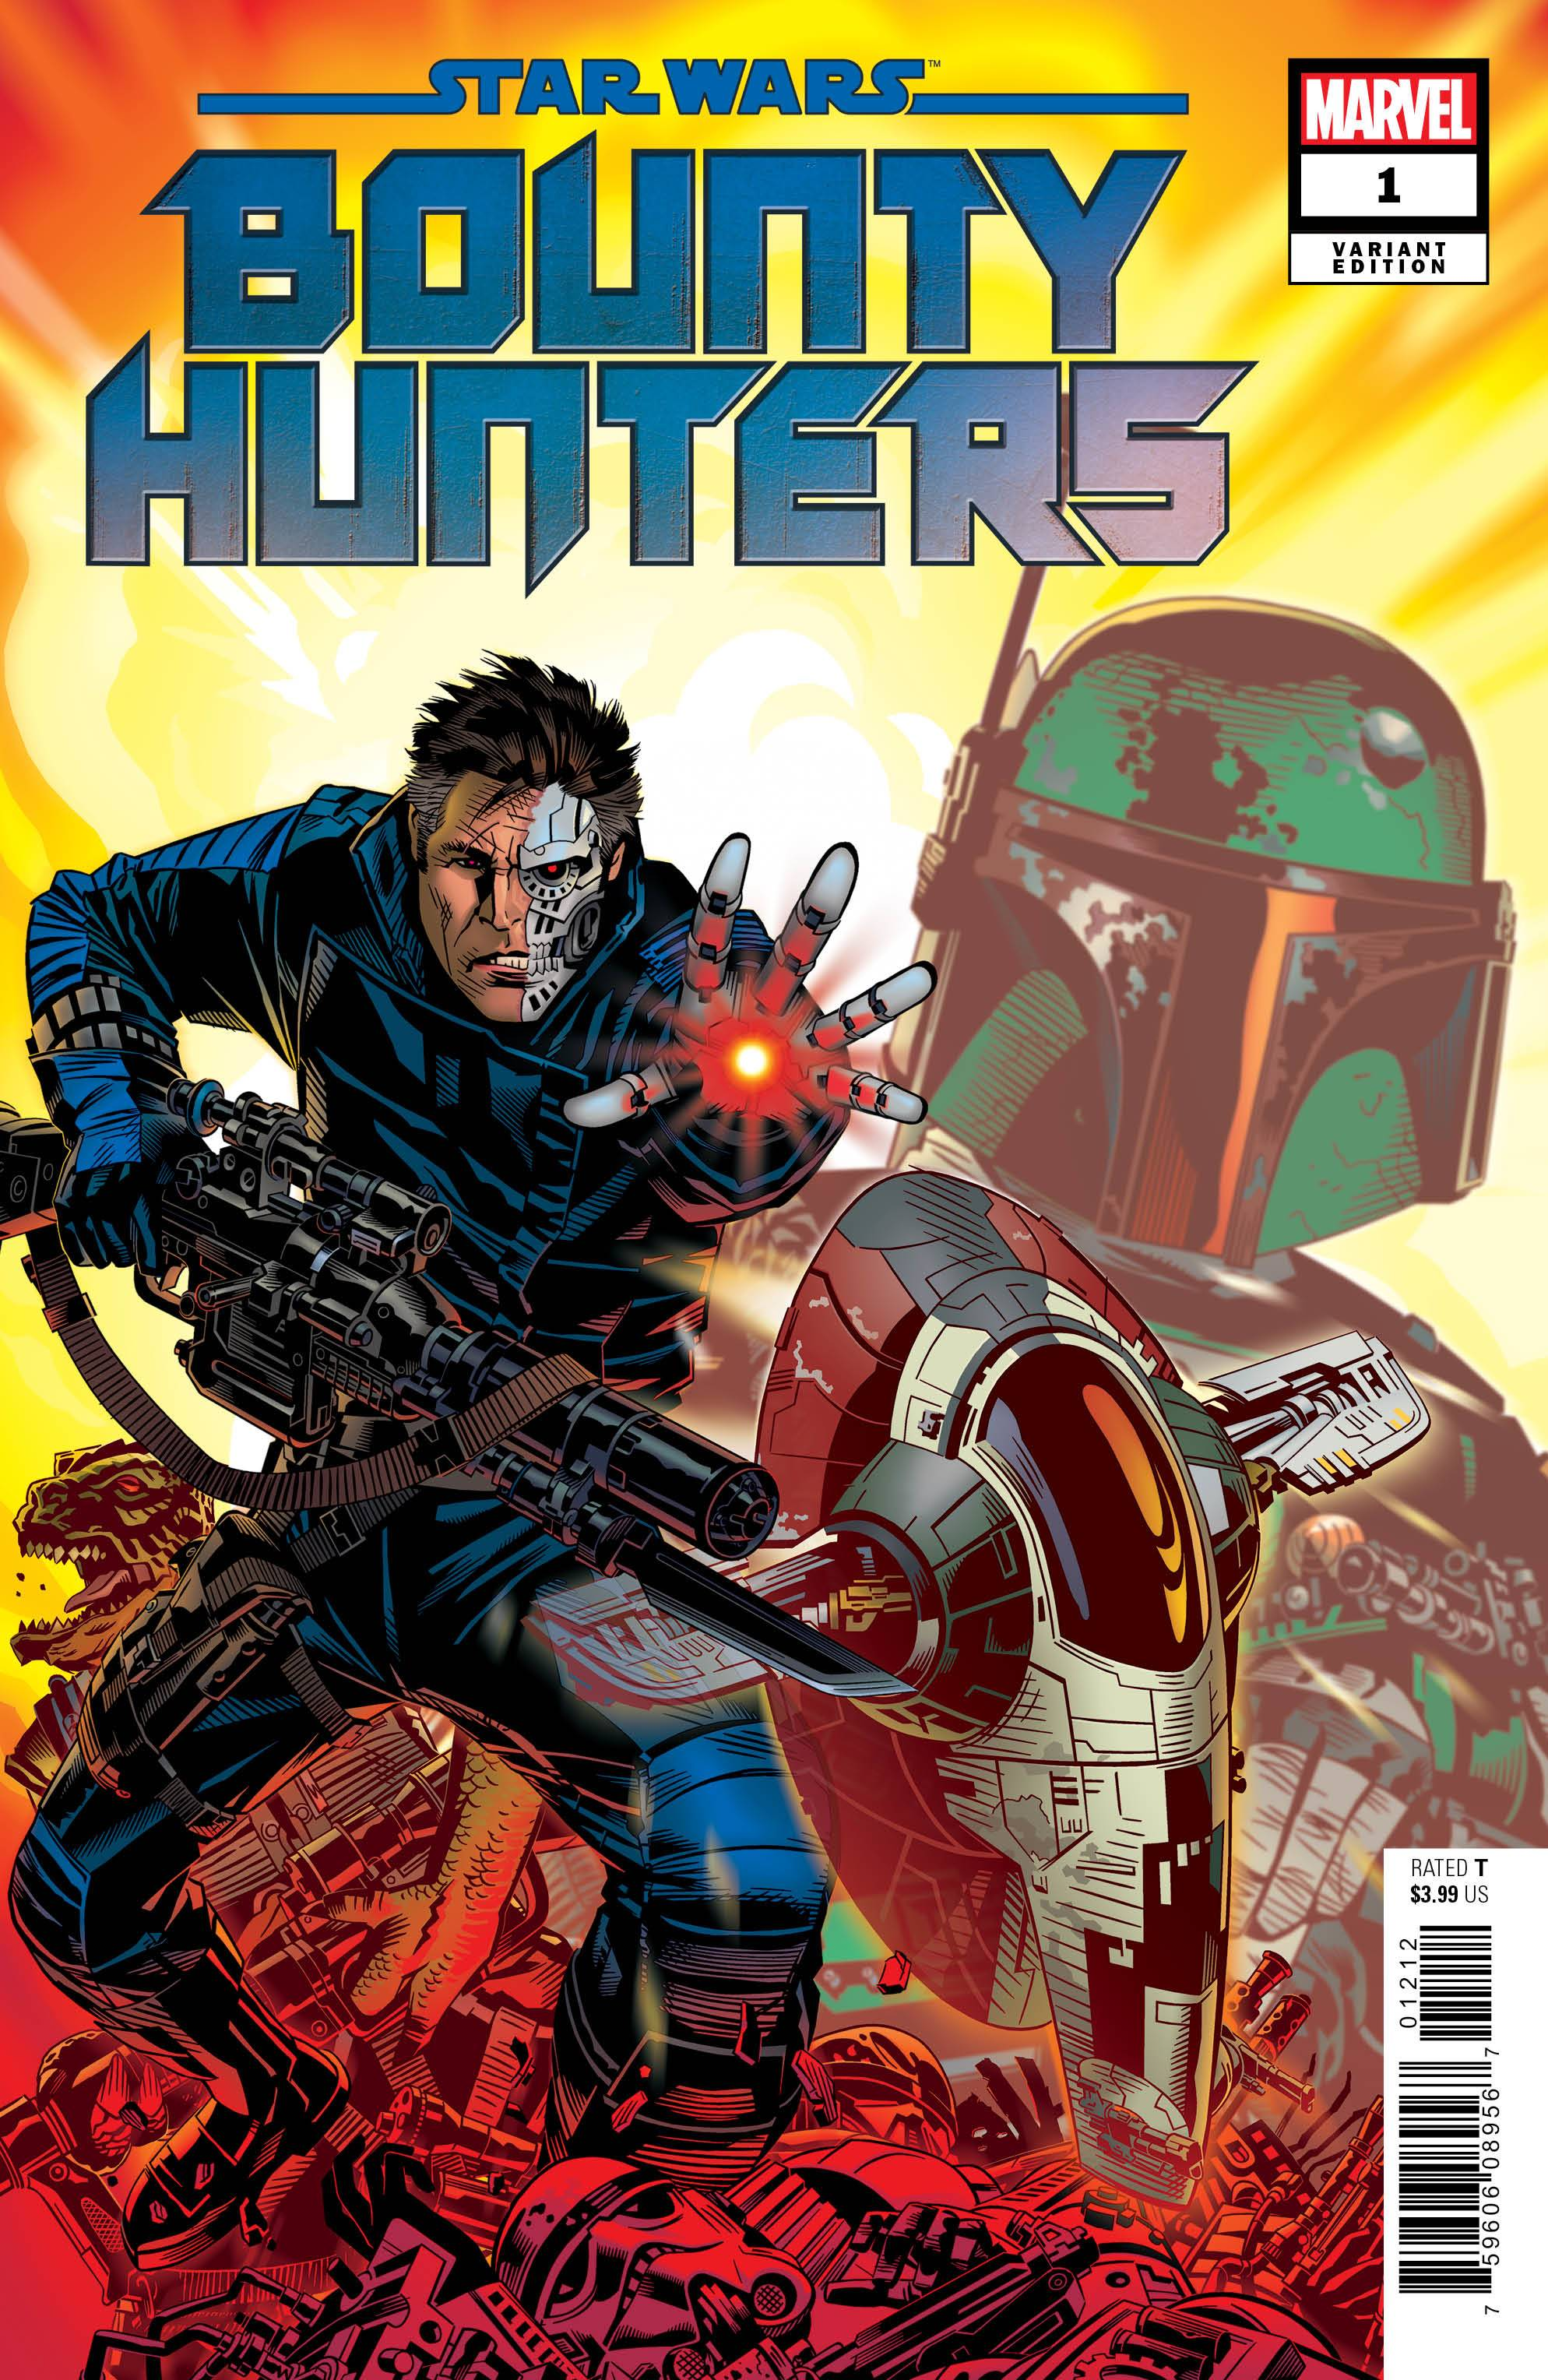 03/11/2020 STAR WARS BOUNTY HUNTERS #1 1:25 VARIANT